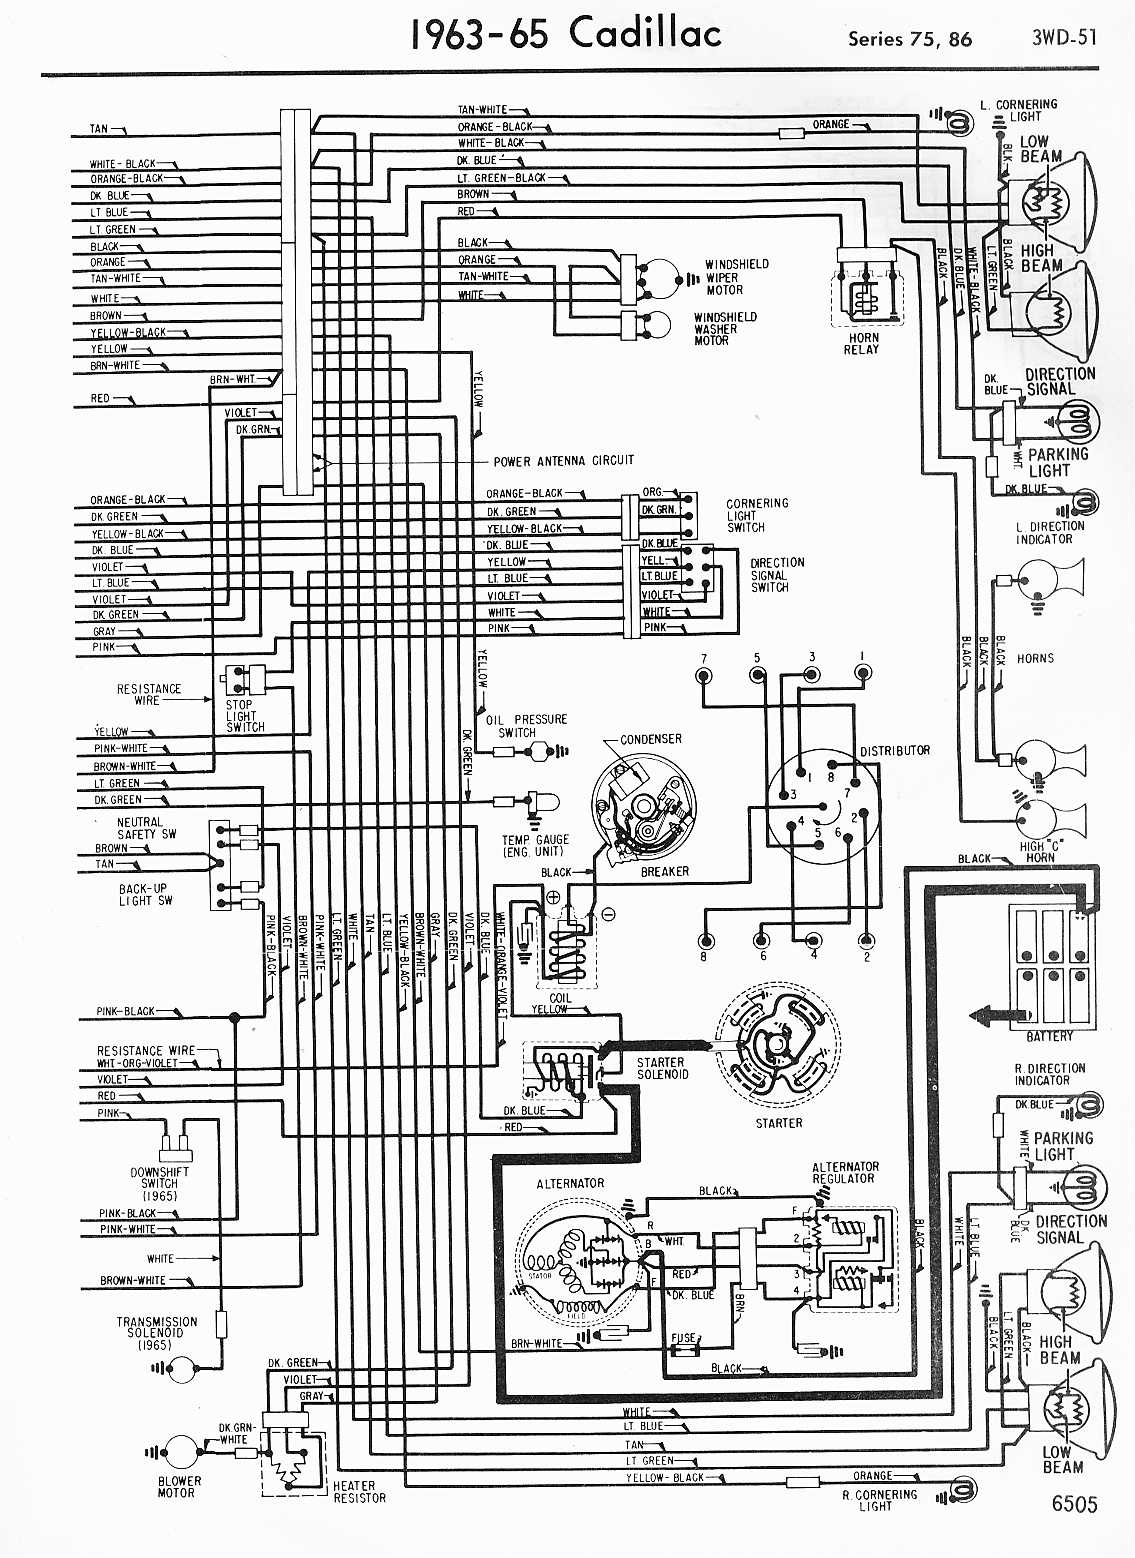 Wiring Diagram For A 1965 Cadillac - Data Wiring Diagram Schematic